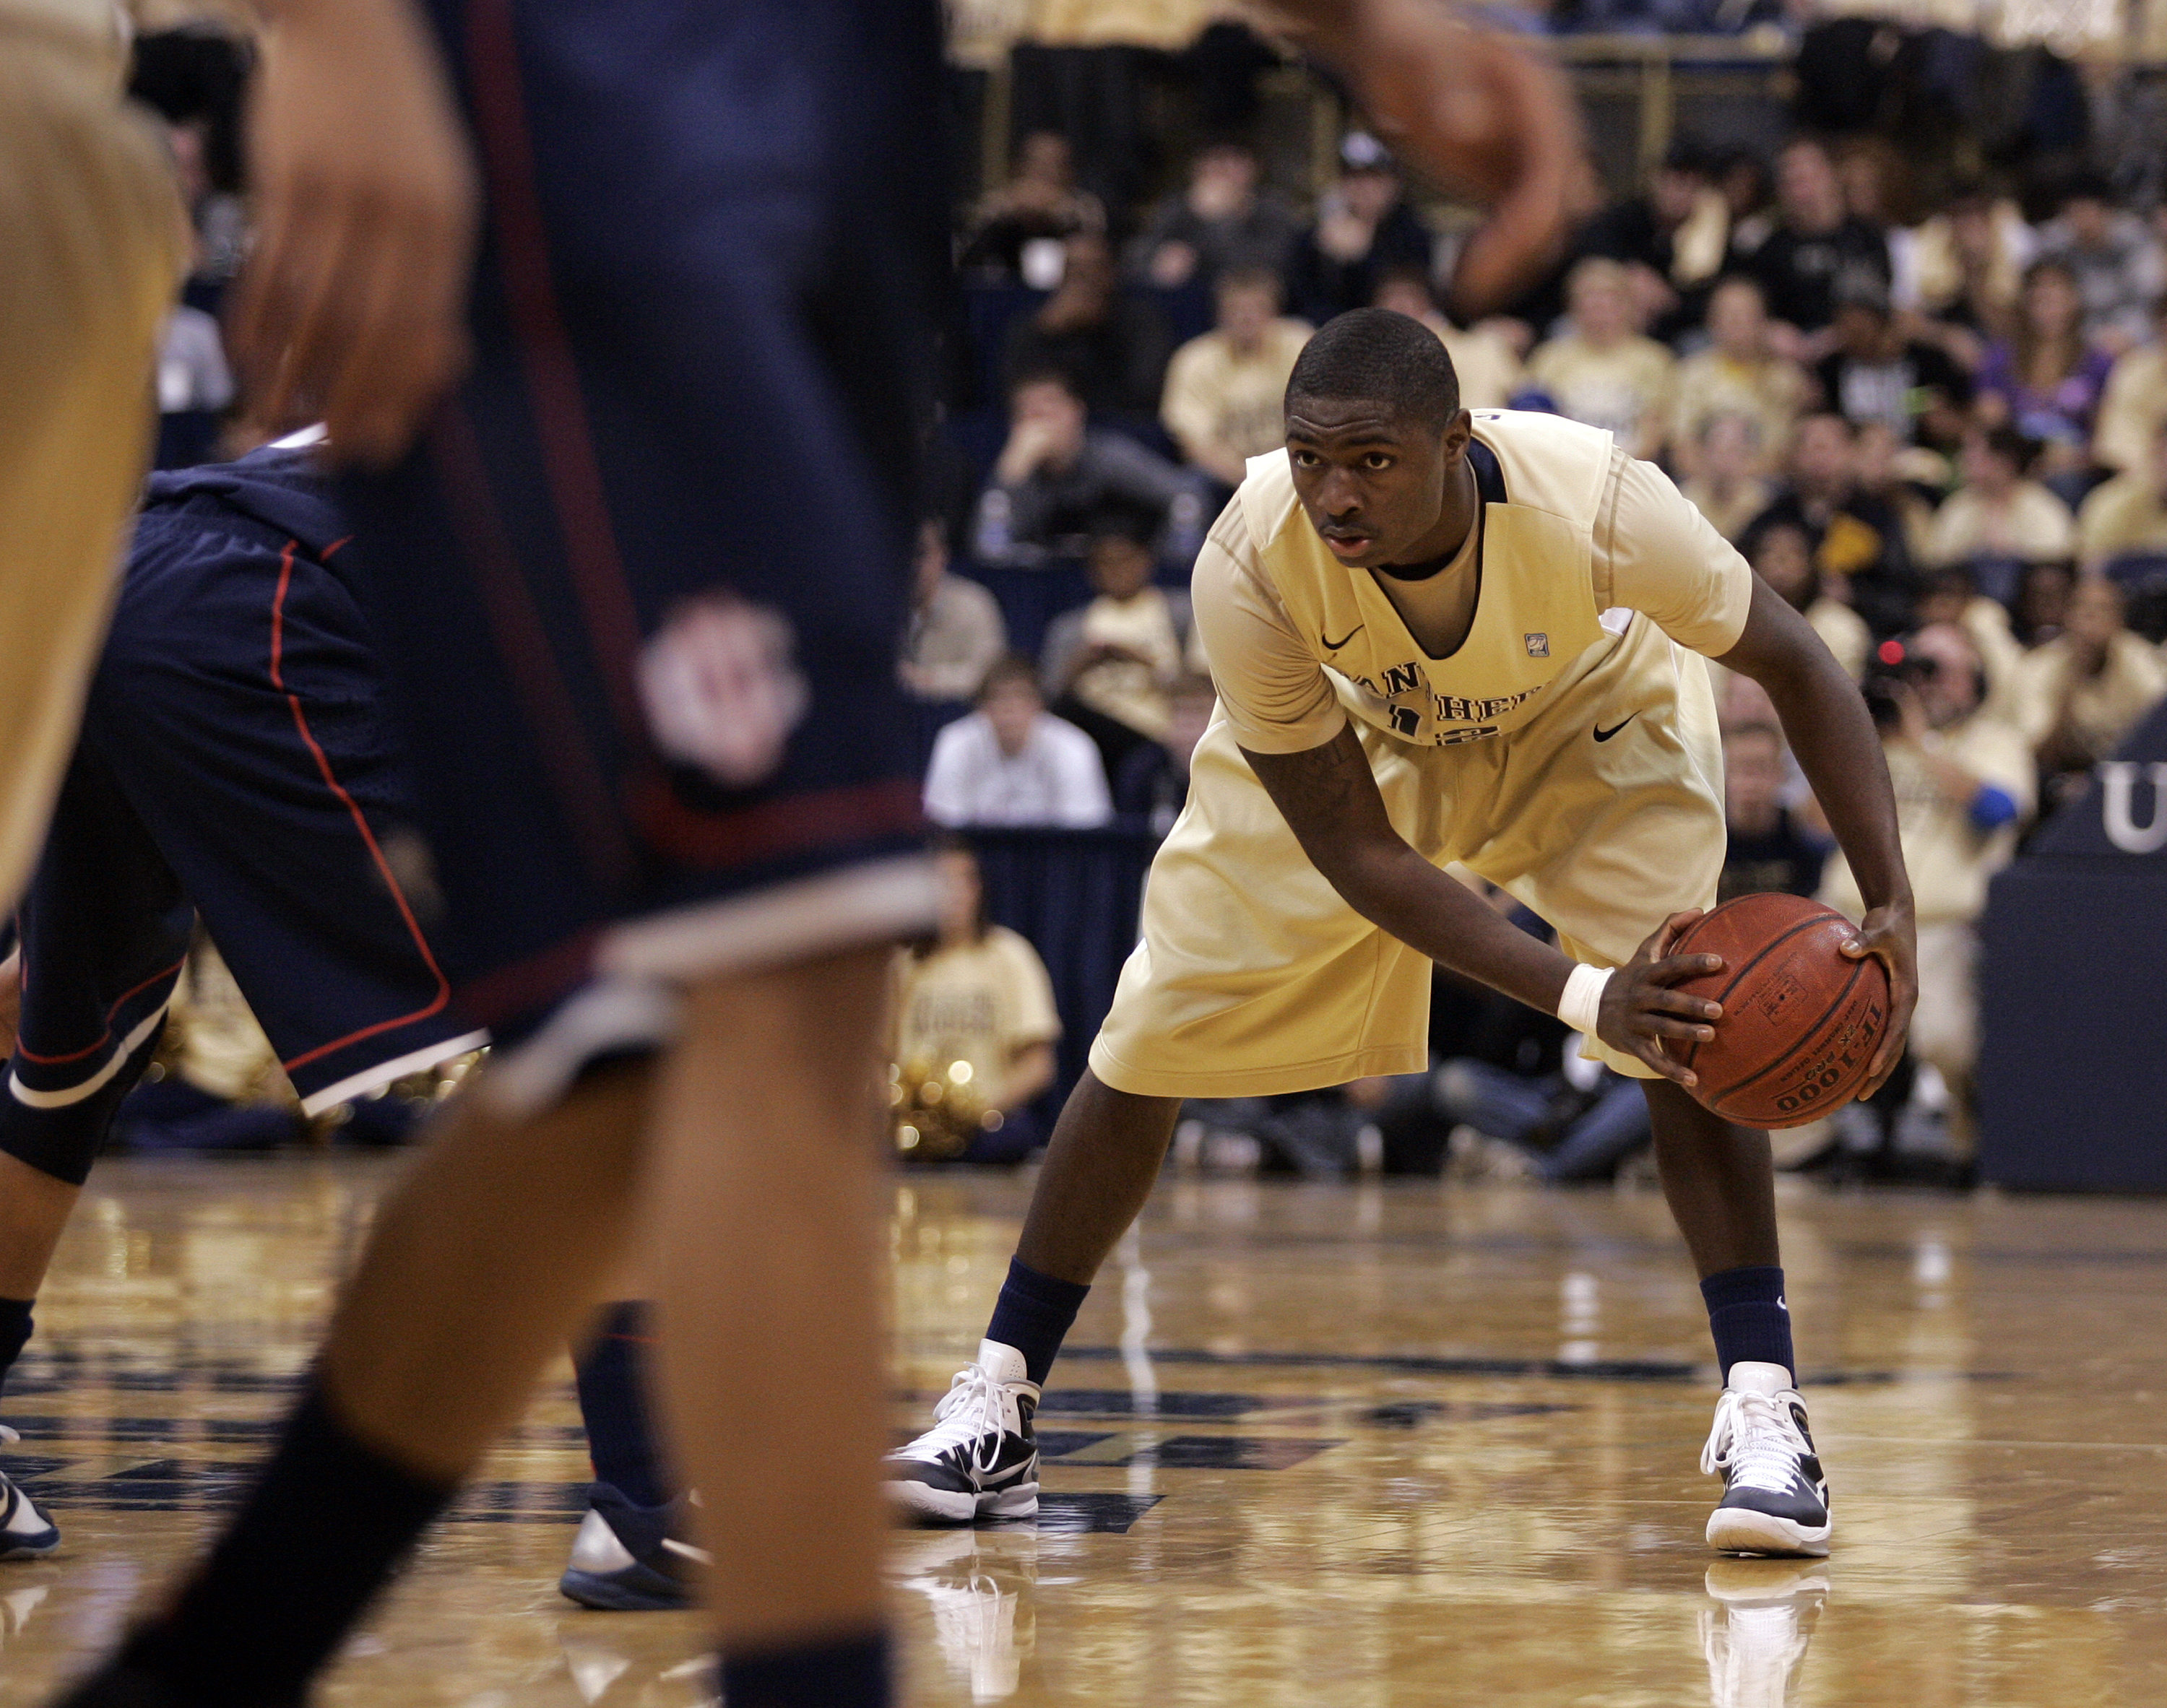 PITTSBURGH, PA - DECEMBER 27:  Ashton Gibbs #12 of the Pittsburgh Panthers looks to make a pass against the Connecticut Huskies at Petersen Events Center on December 27, 2010 in Pittsburgh, Pennsylvania.  Pittsburgh defeated Connecticut 78-64.  (Photo by